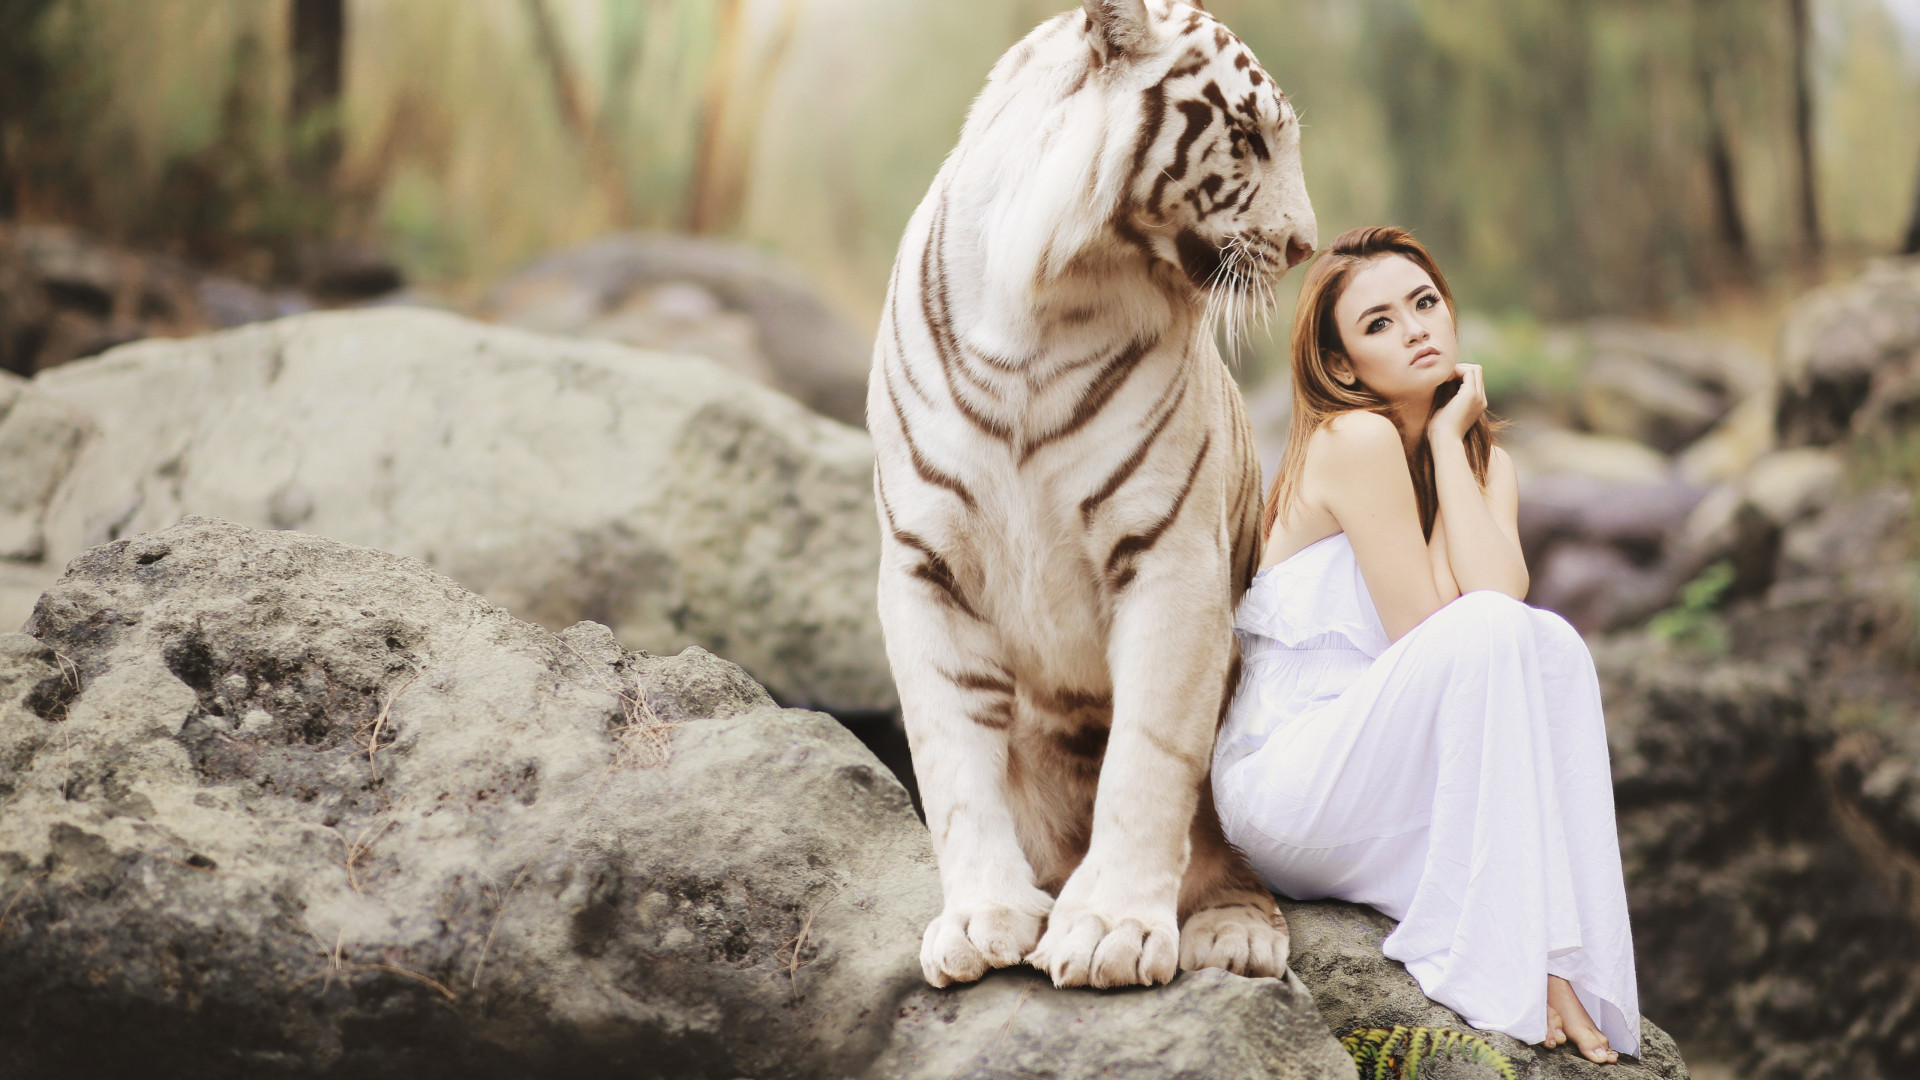 Bengal tiger and a beautiful girl wallpaper 1920x1080